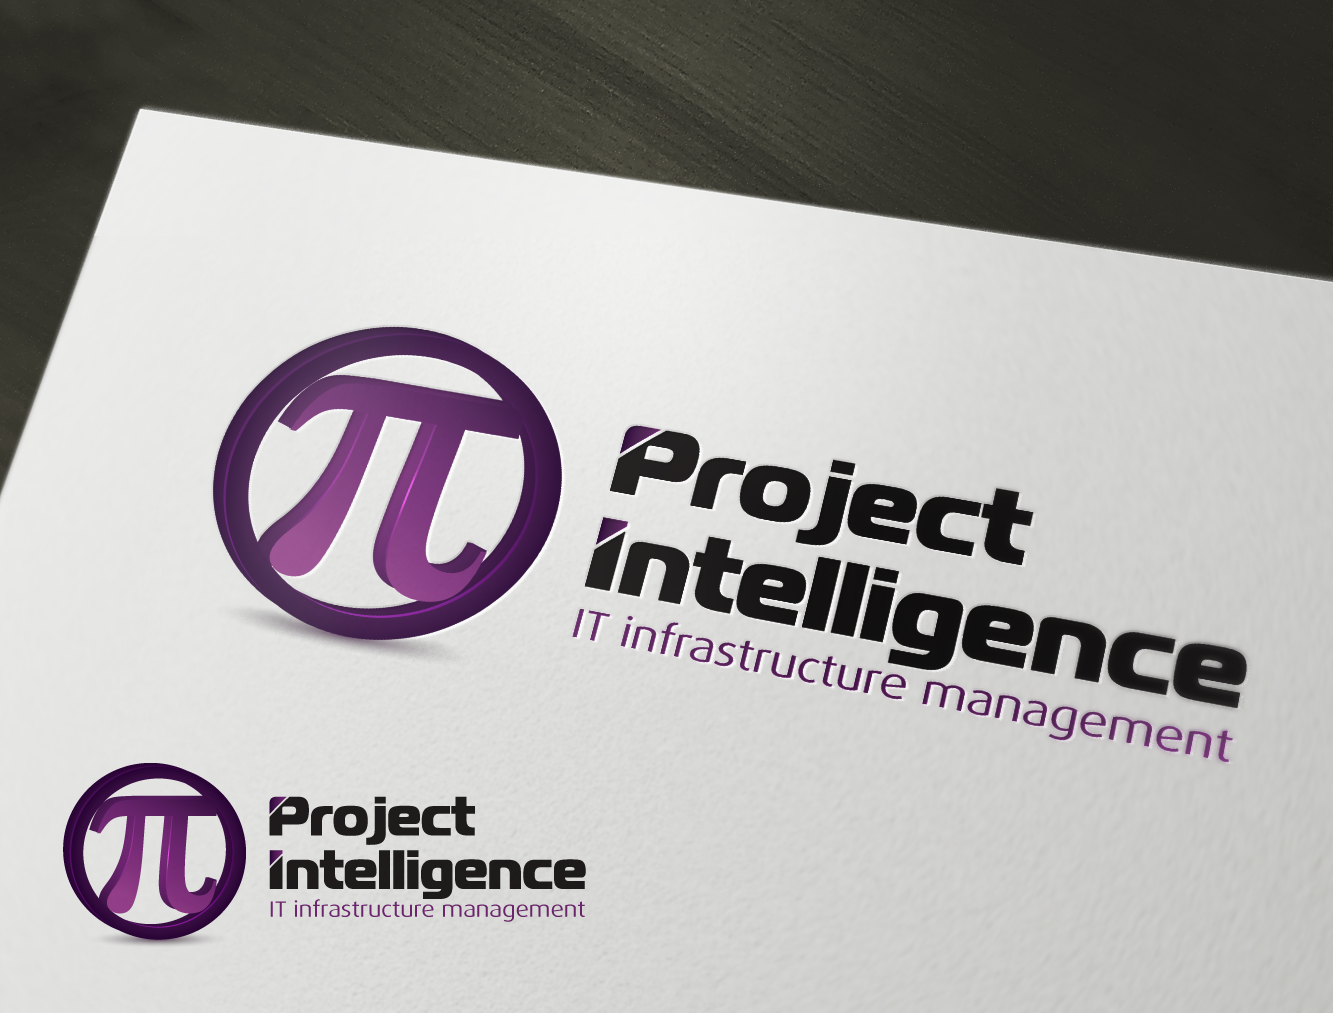 logo and business card for PI - Project Intelligence